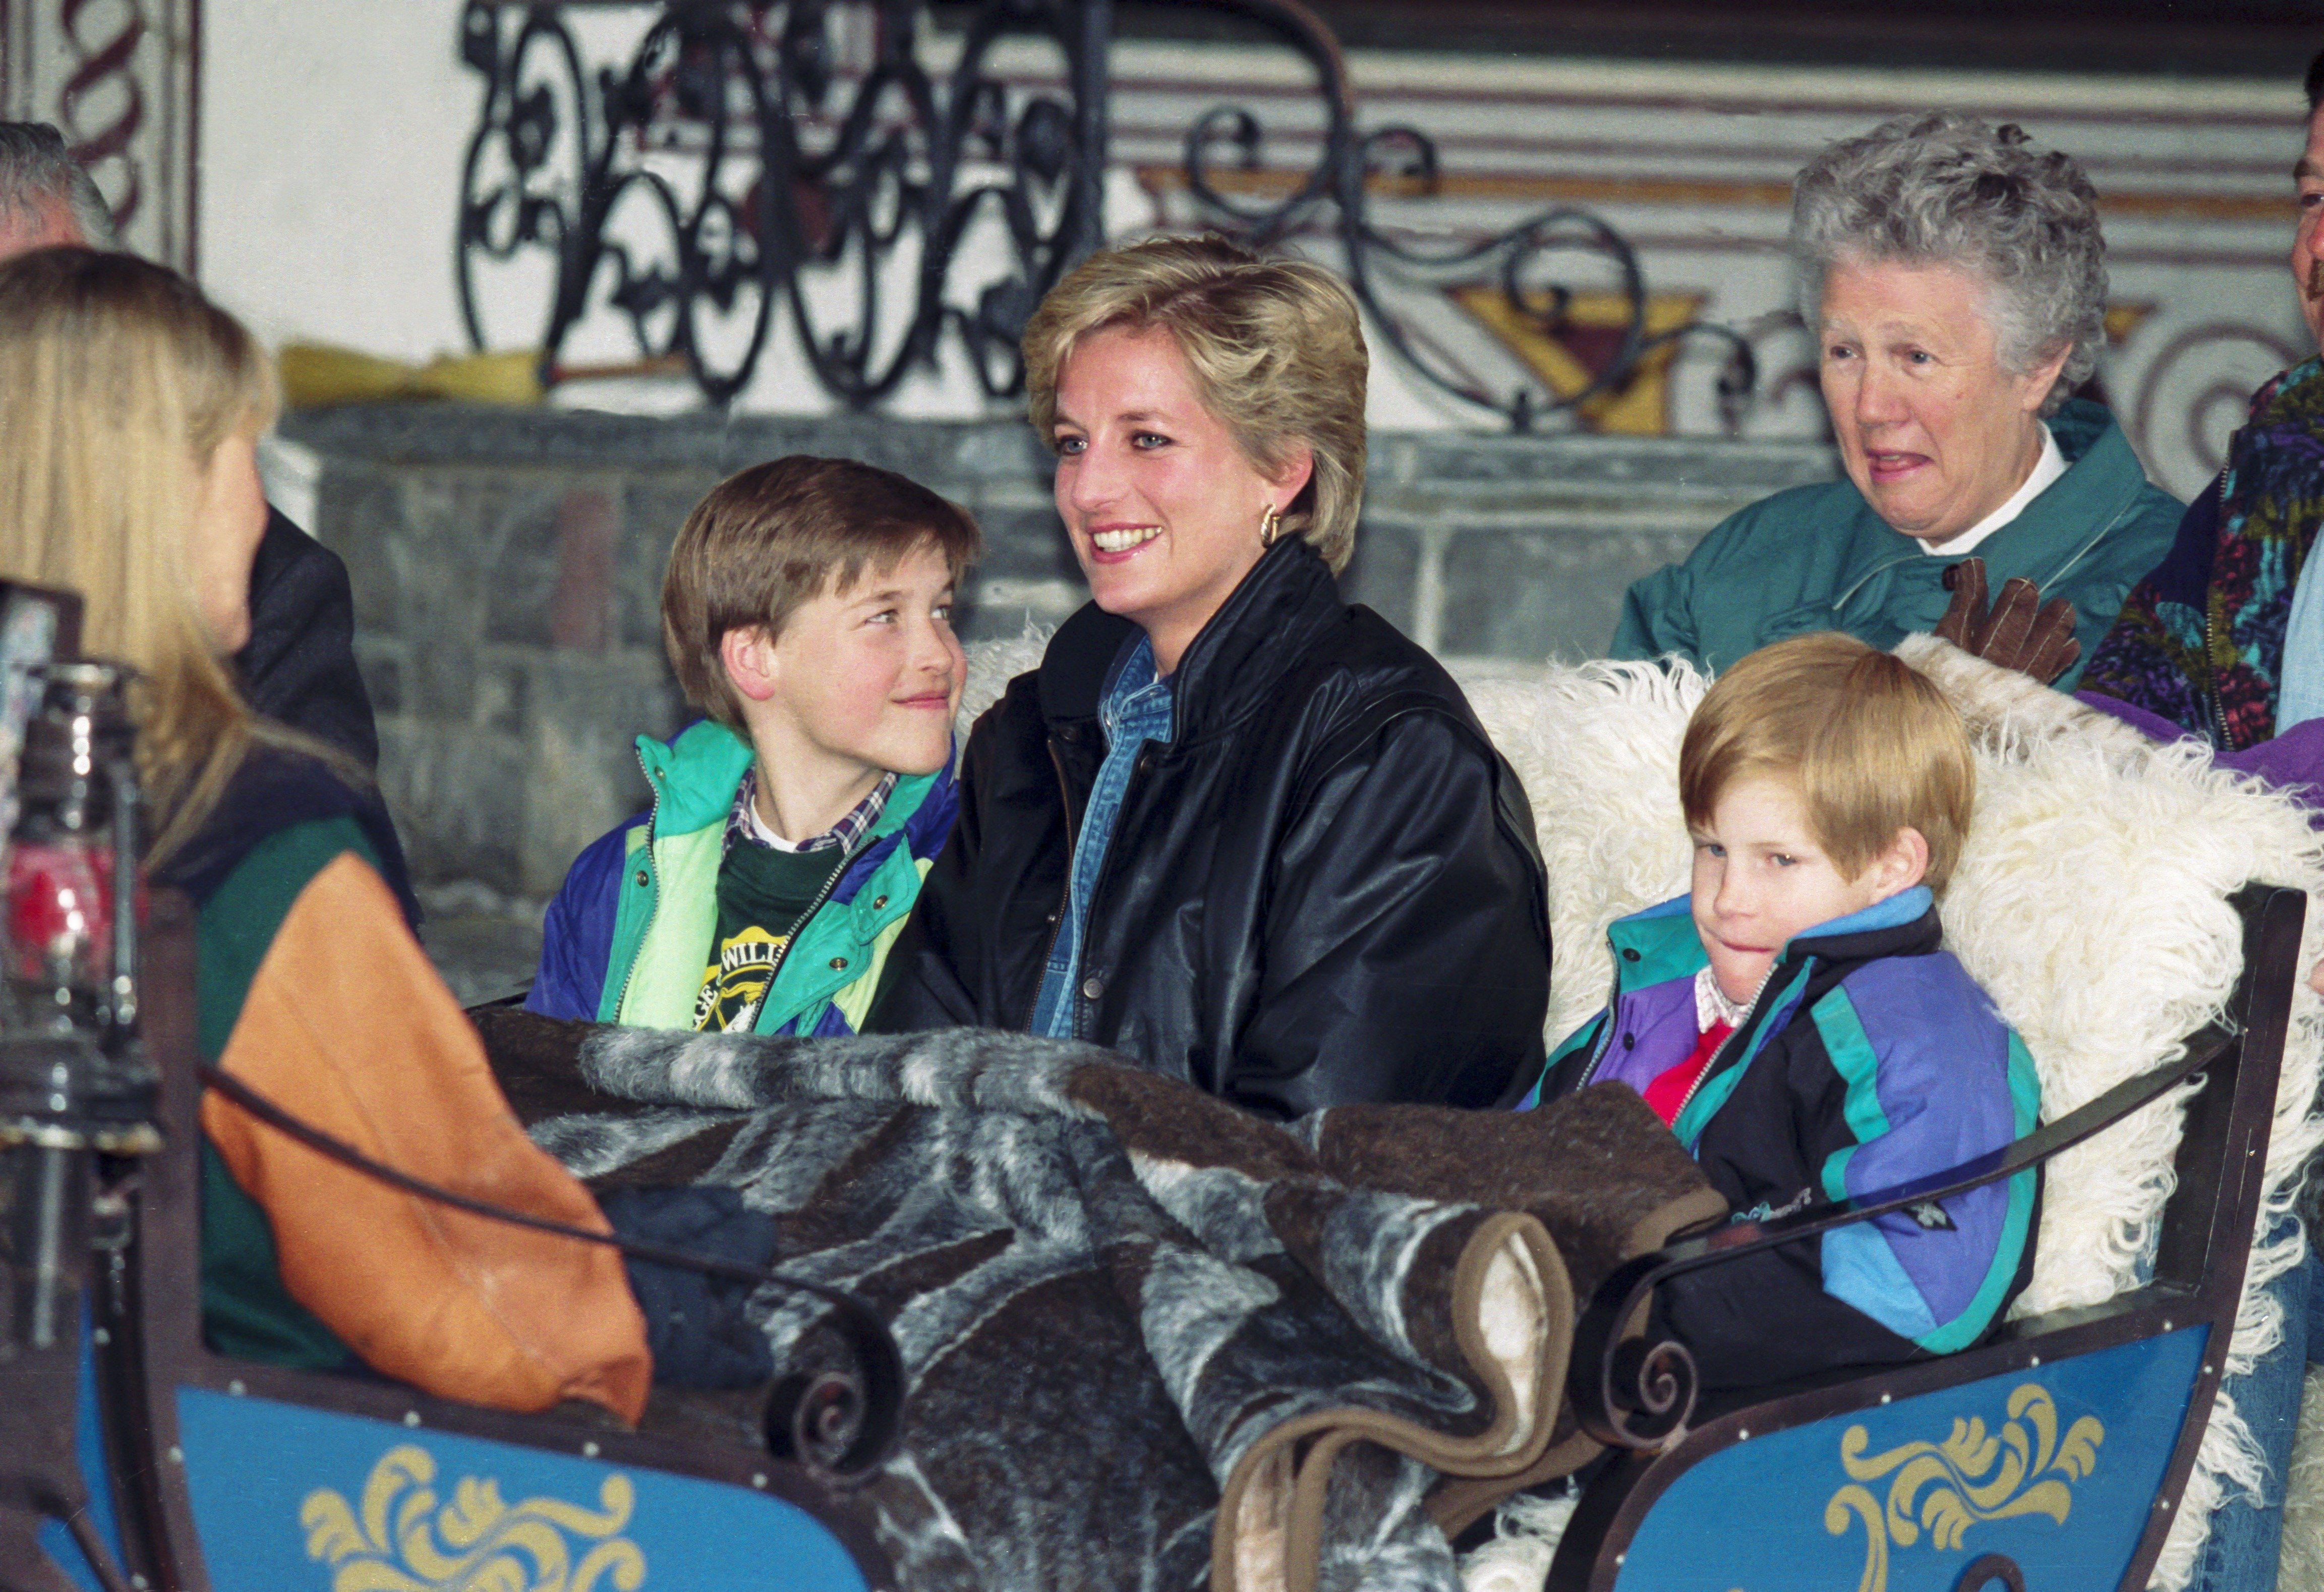 Image Credits: Getty Images | Princess Diana Pictured Spending Quality Time With Her Sons, William (left) And Harry (right)